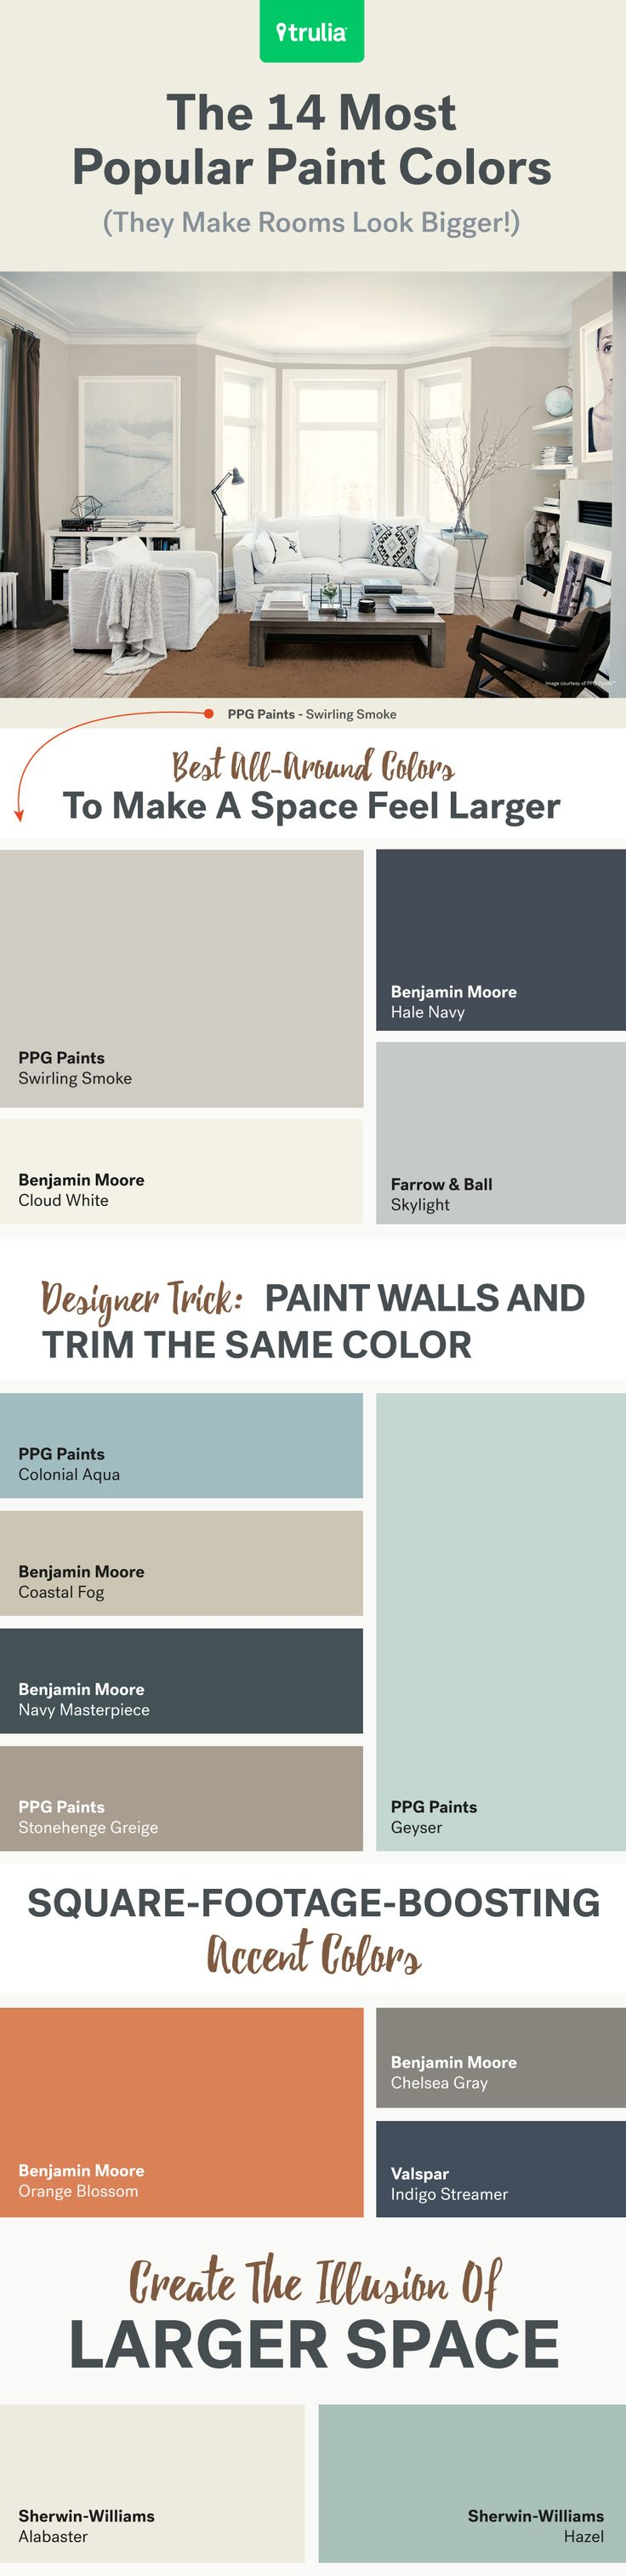 14 Popular Paint Colors For Small Rooms U2013 Life At Home U2013 Trulia Blog